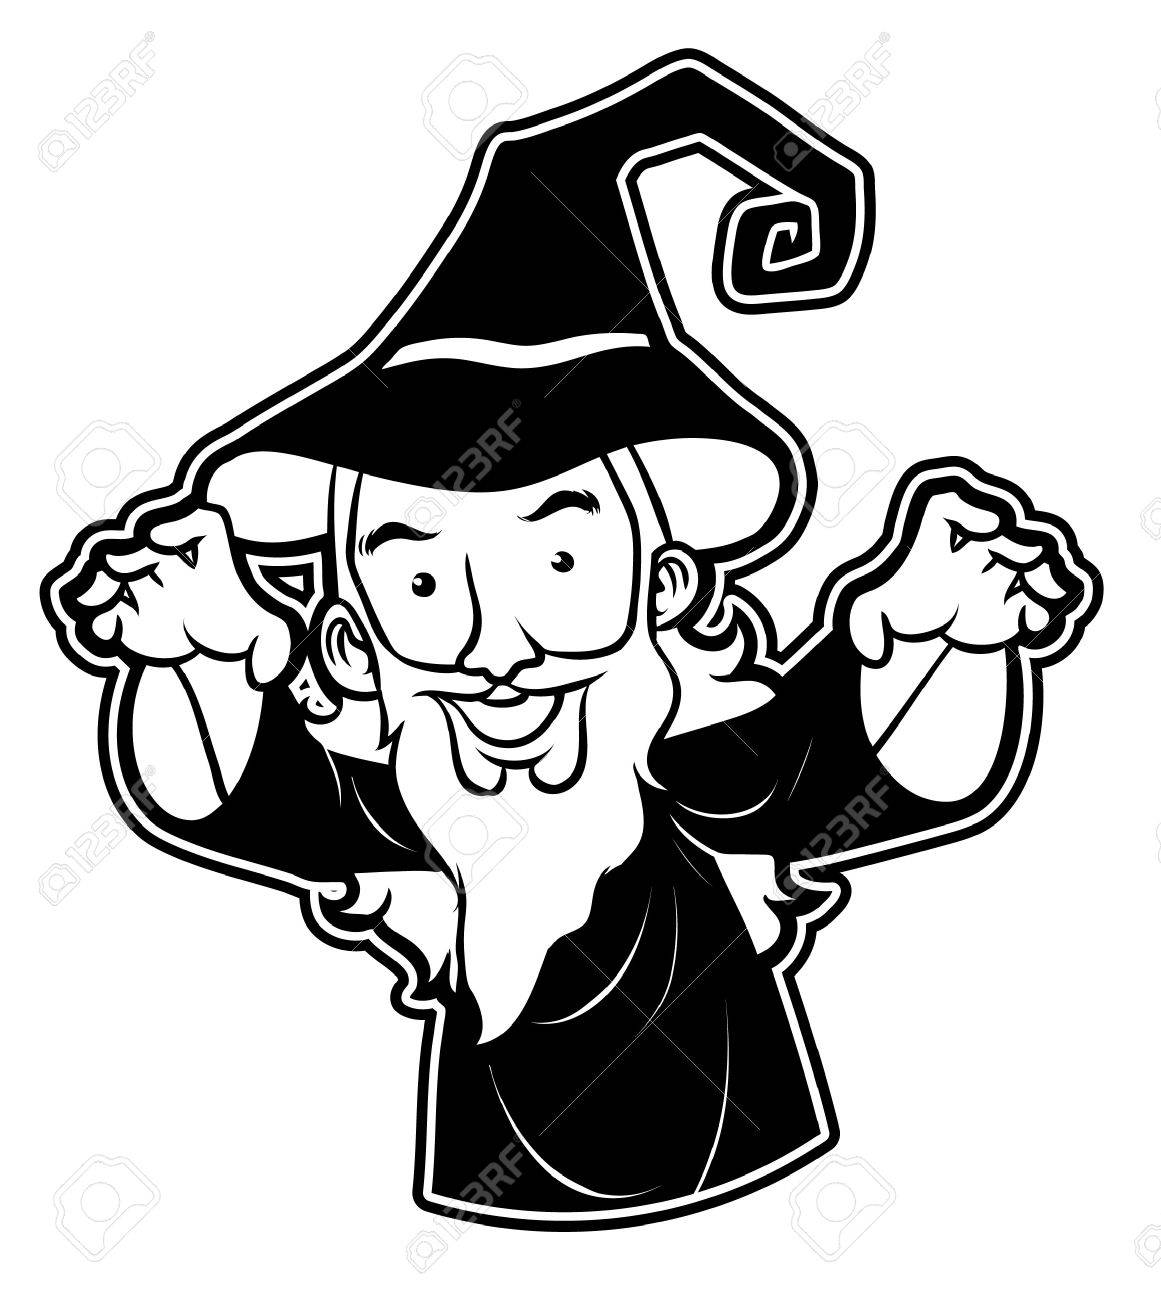 black and white clipart wizard.